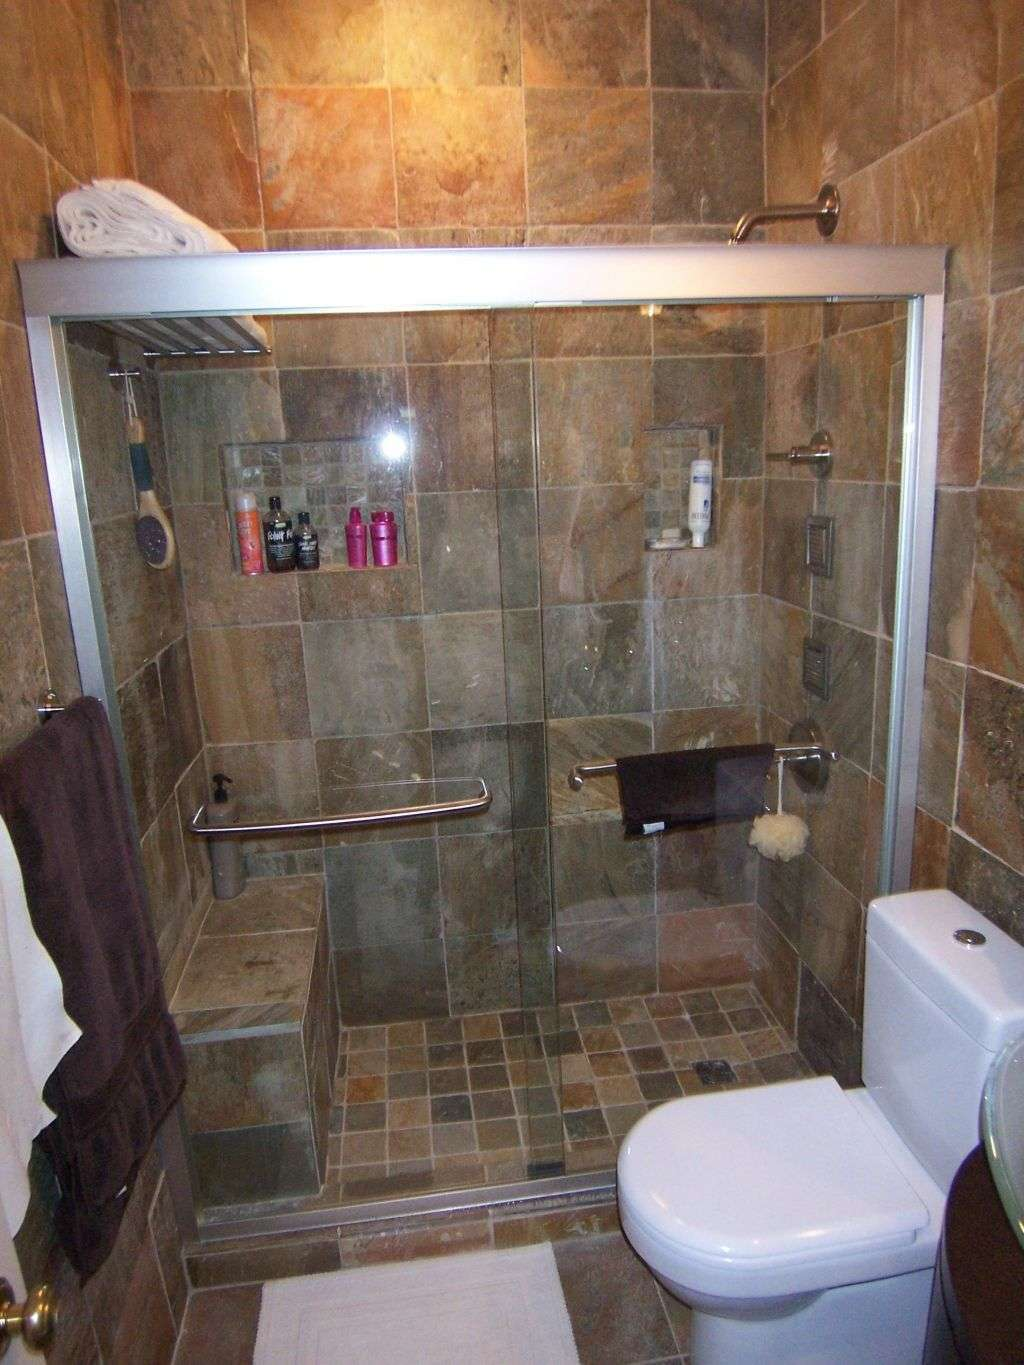 40 wonderful pictures and ideas of 1920s bathroom tile designs for Shower remodel ideas for small bathrooms